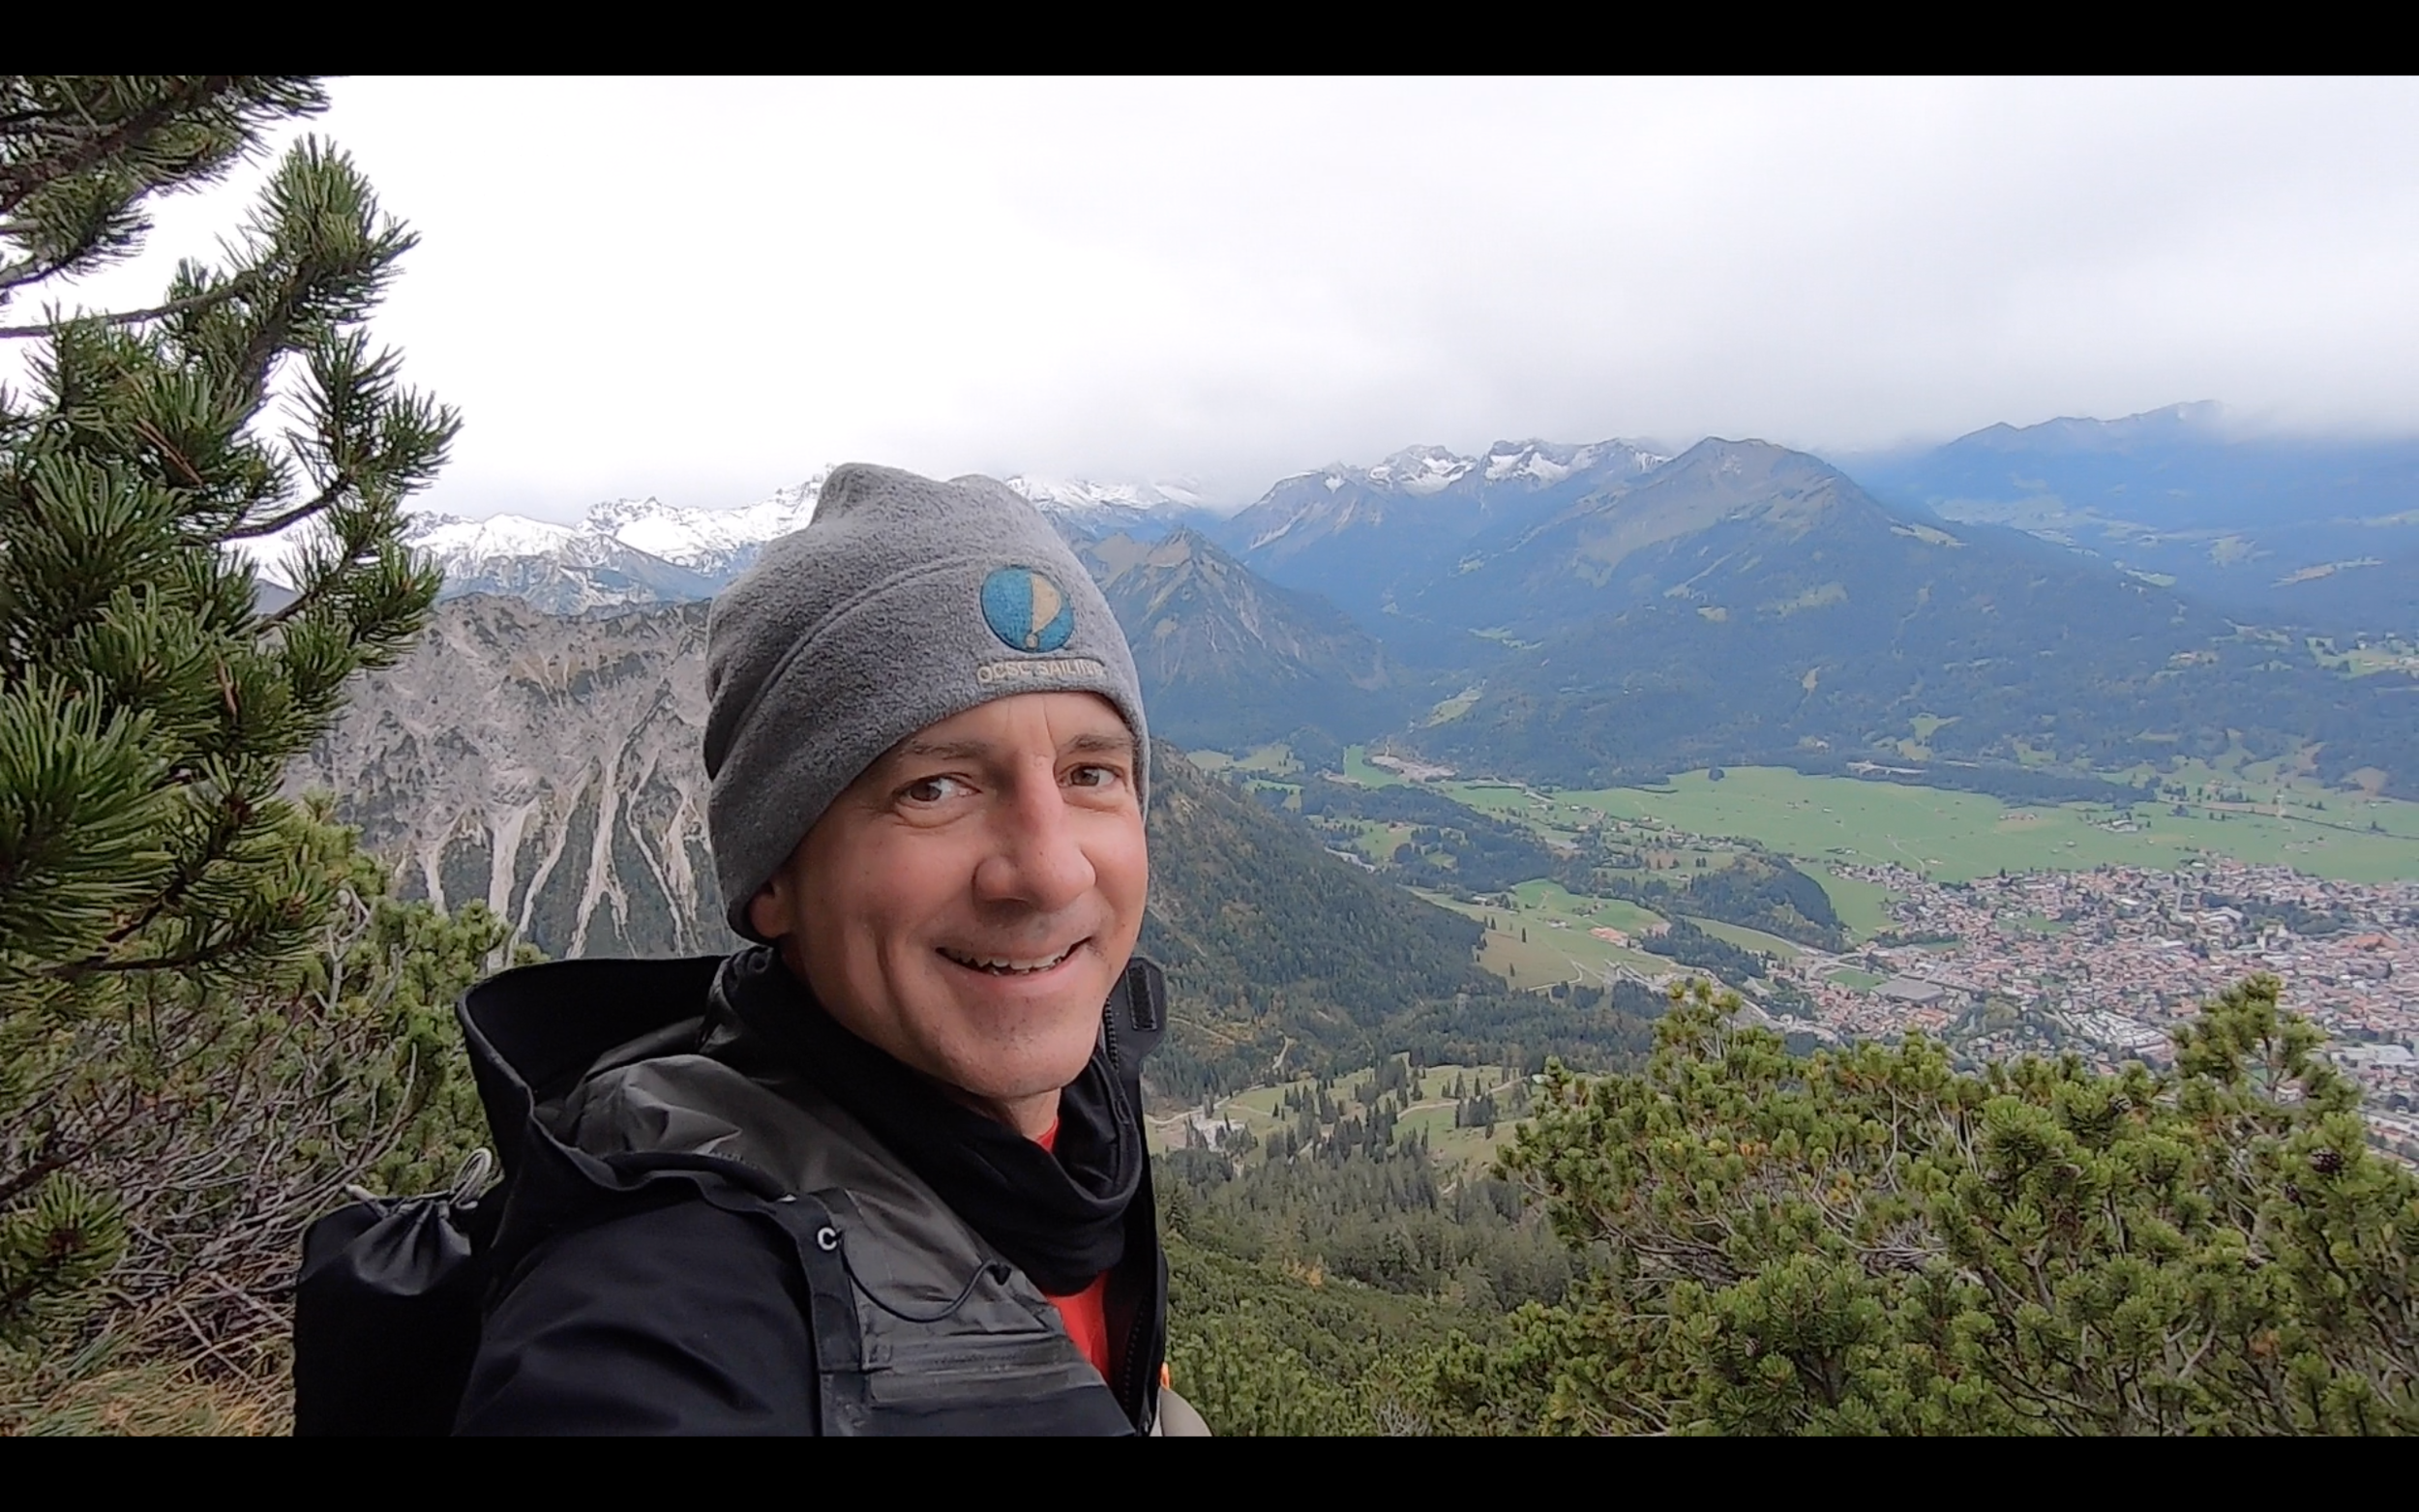 ON THE WAY UP TO RUBIHORN PEAK. THE TOWN OF OBERSTDORF IS IN THE DISTANCE.